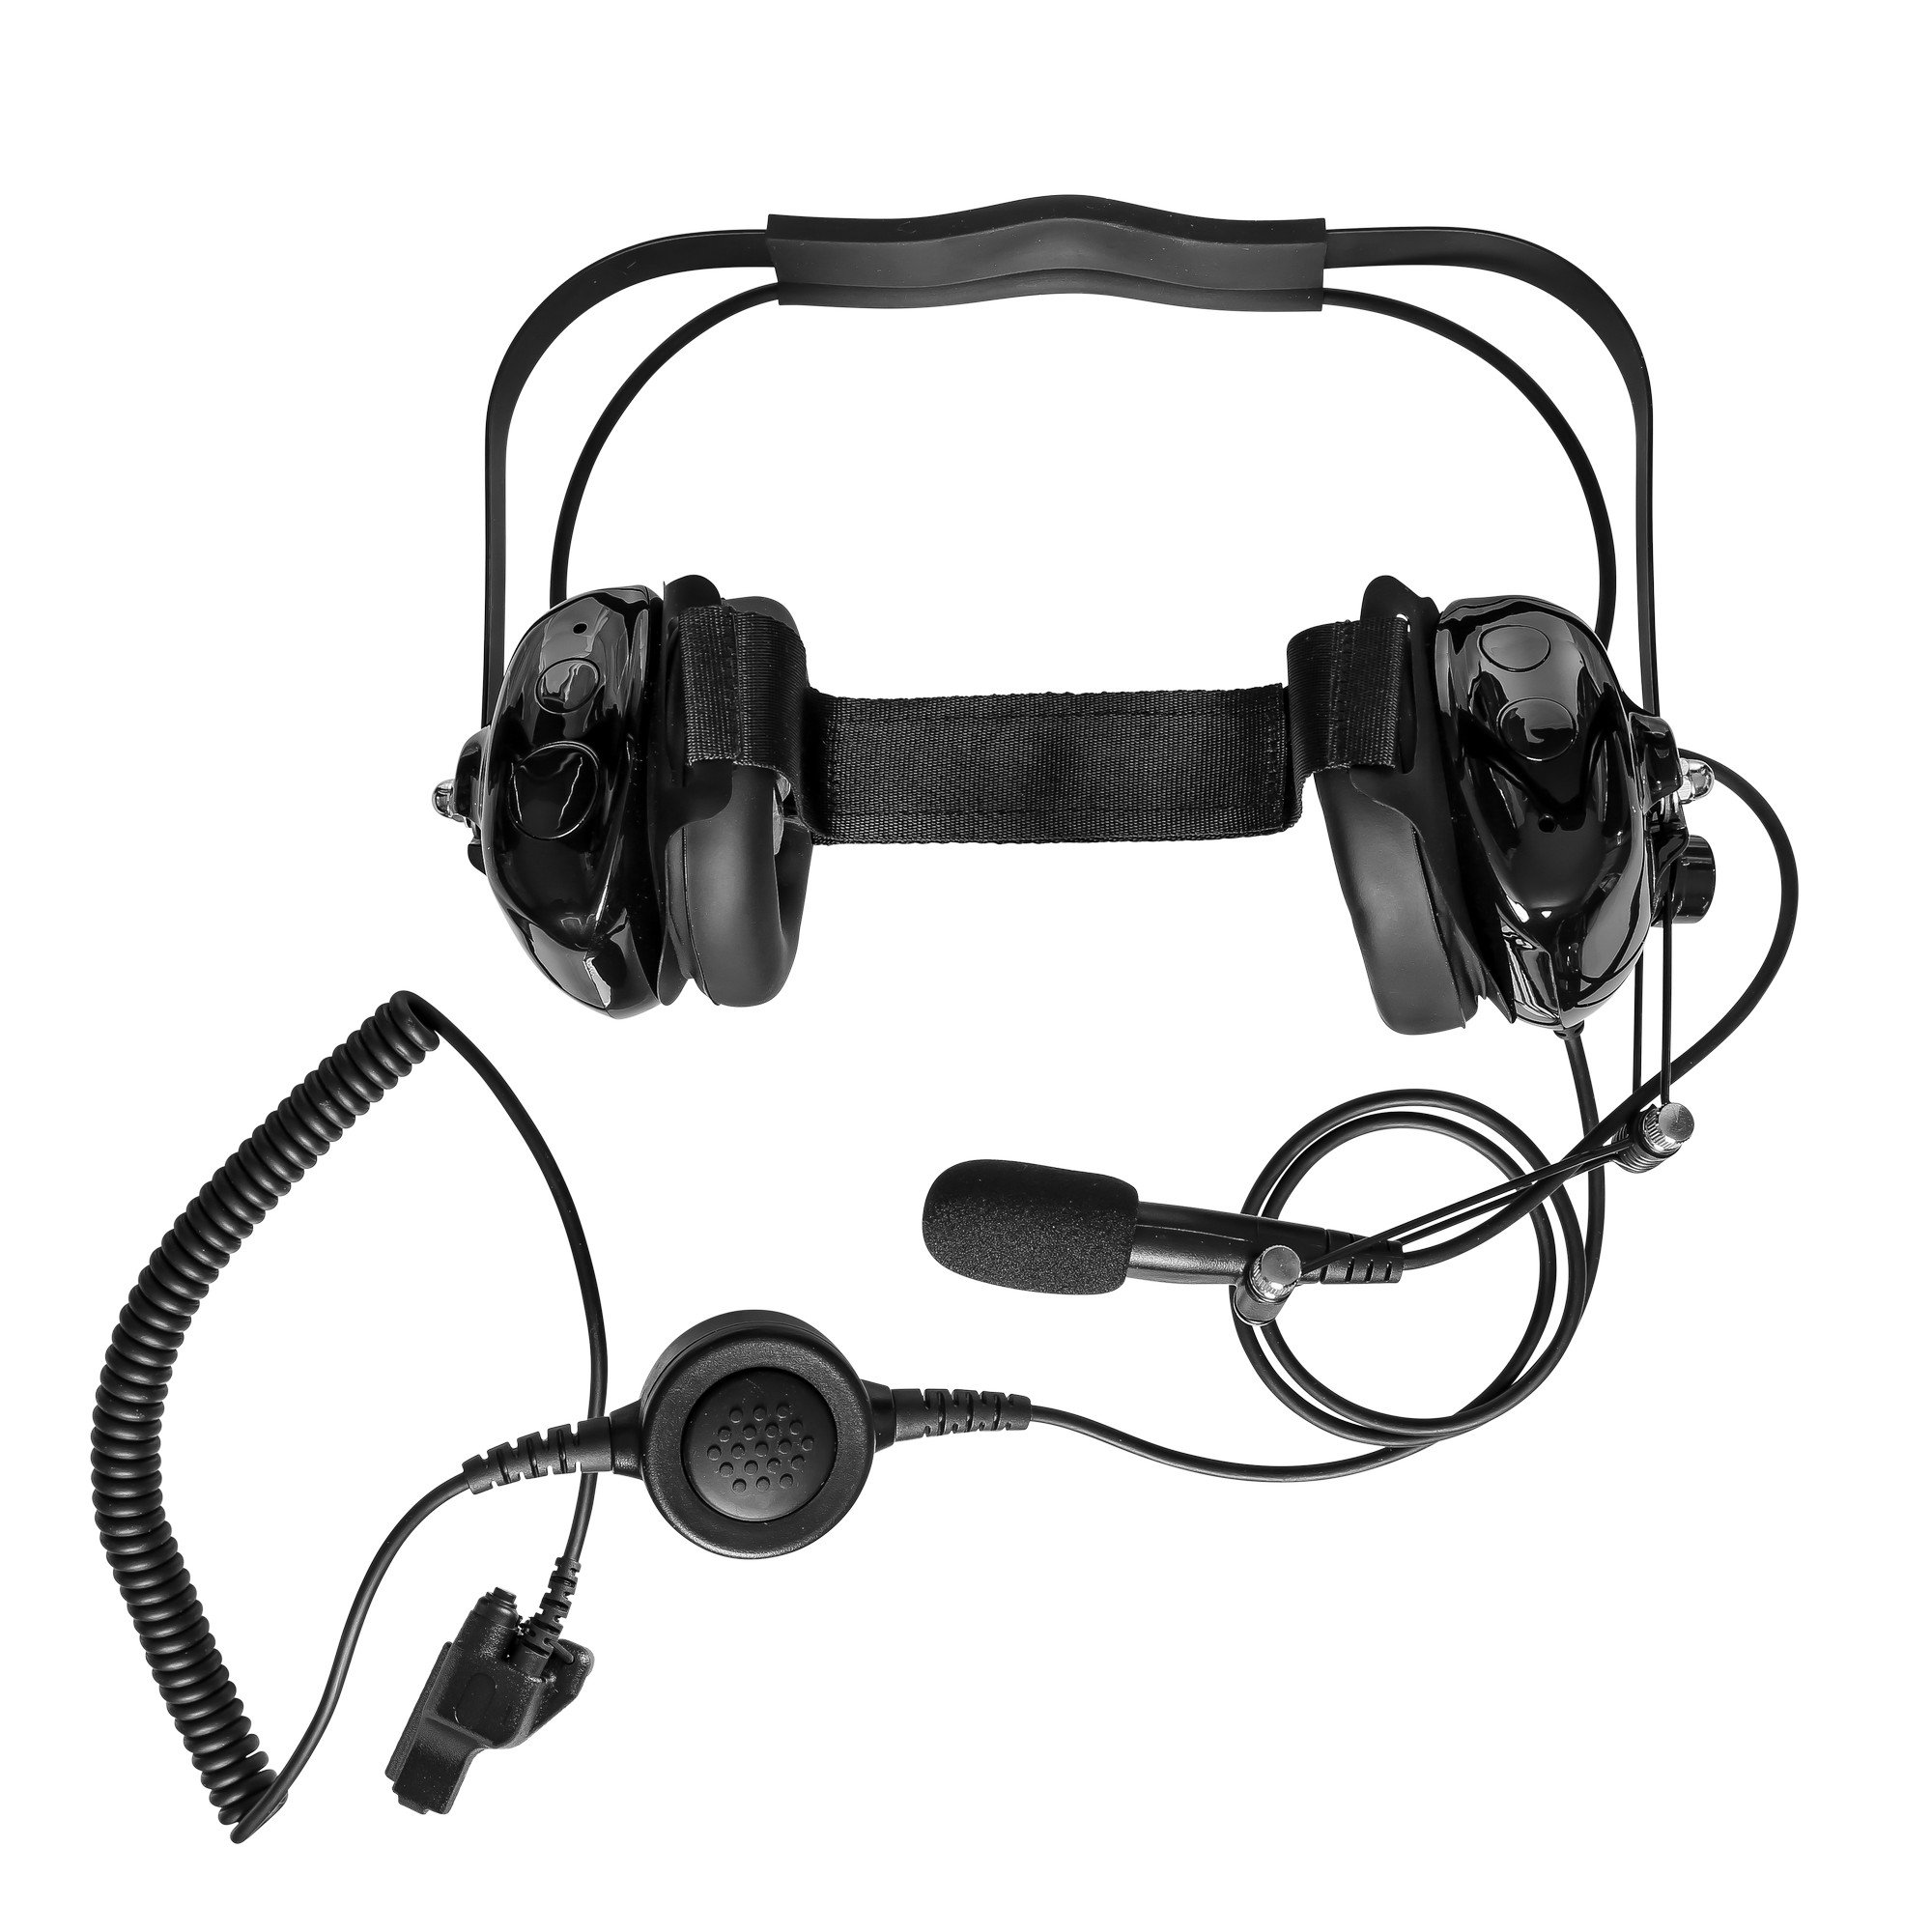 Maxtop AHDH0032-BK-M7 Two Way Radio Noise Cancelling Headset for Motorola HT-1000 MT2000 MT2100 MT6000 MTS2000 XTS2500 by MAXTOP (Image #1)